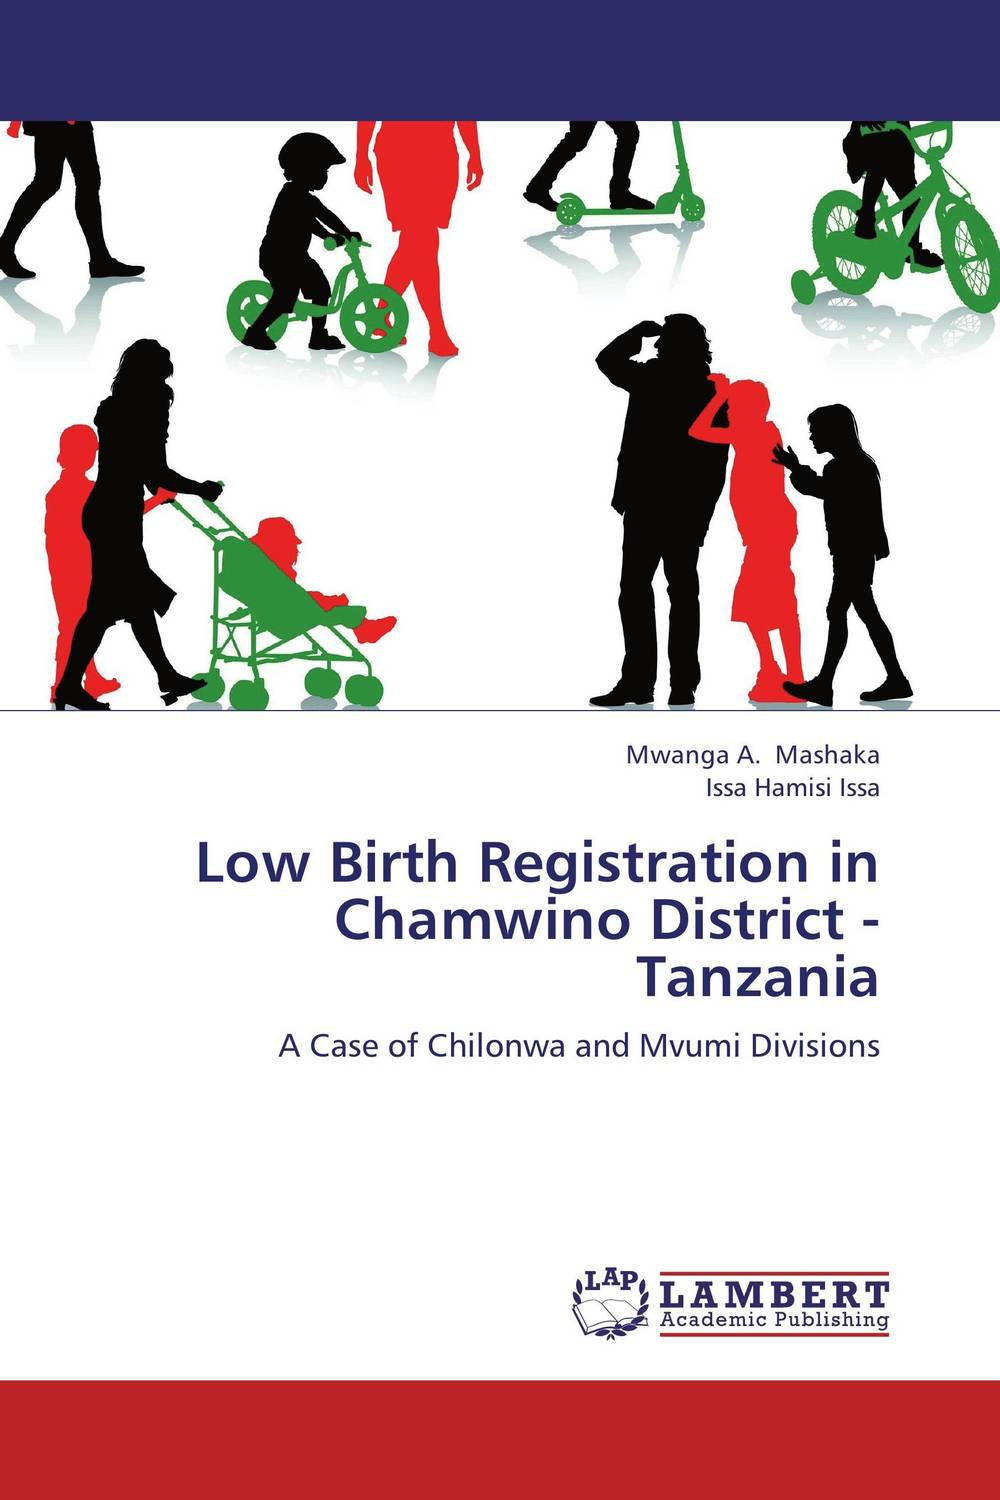 Low Birth Registration in Chamwino District - Tanzania manjari singh introducing and reviewing preterm delivery and low birth weight